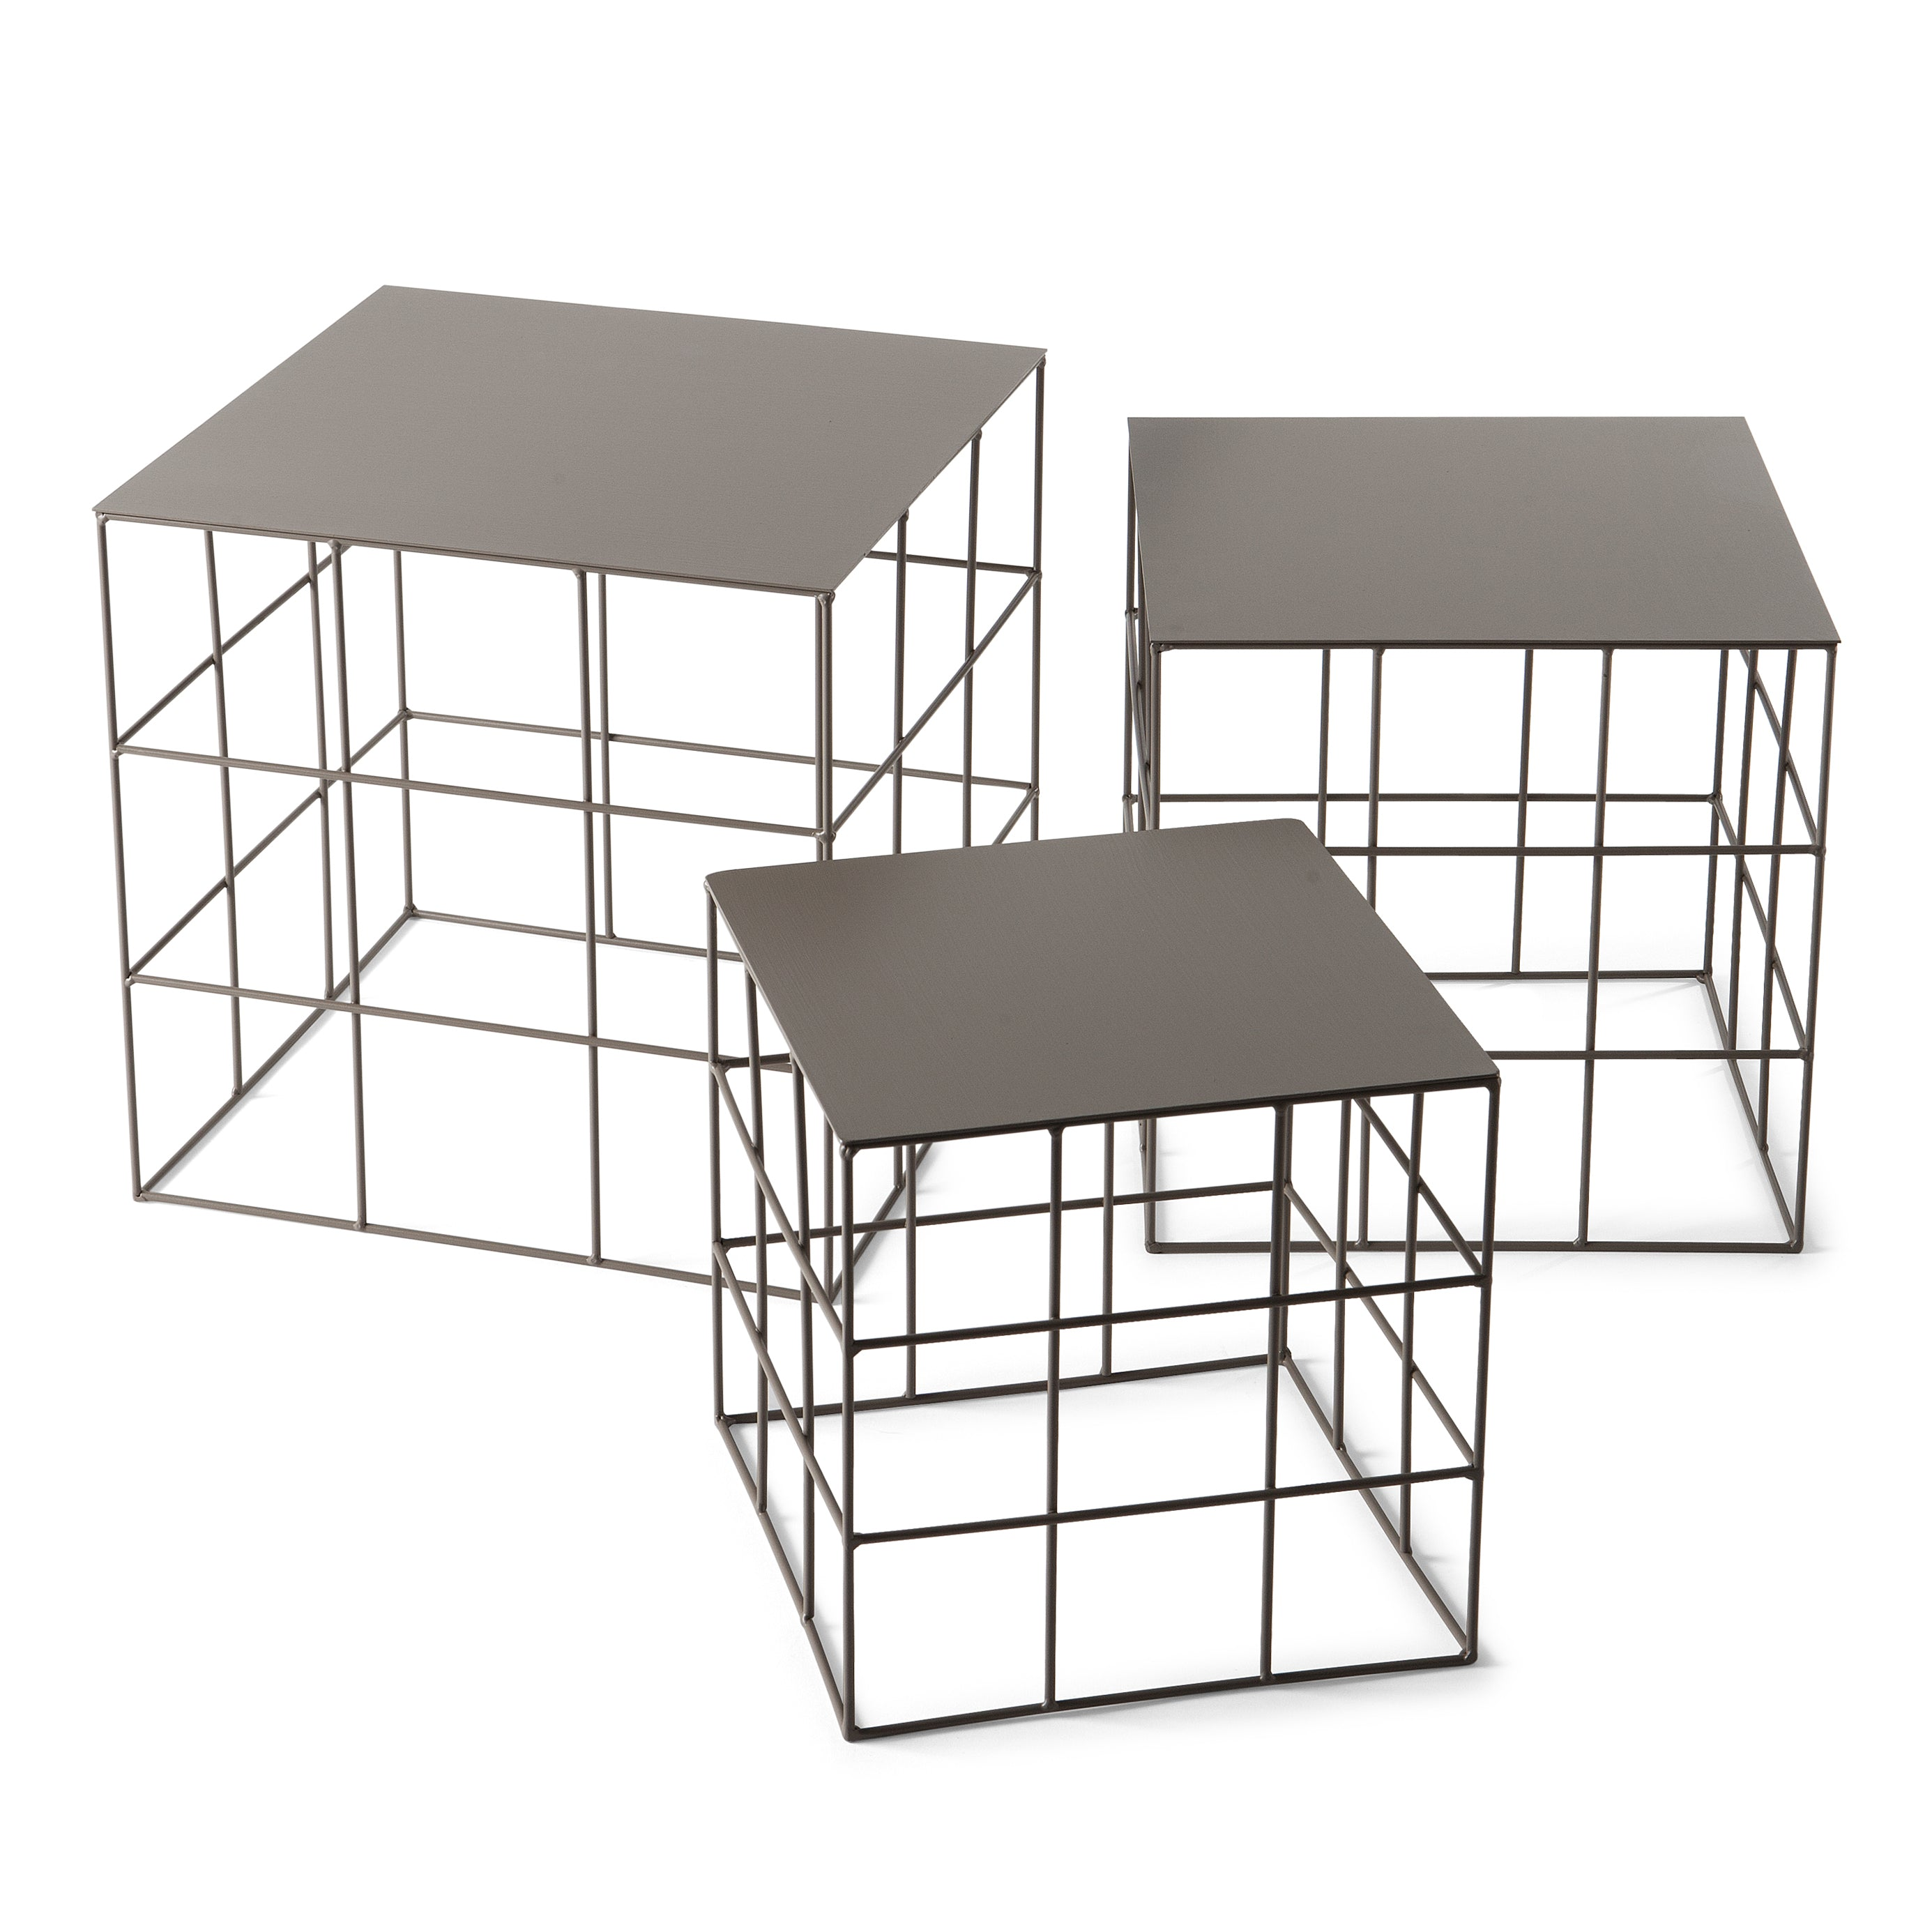 Reton Square Side Table Set: Beige Grey